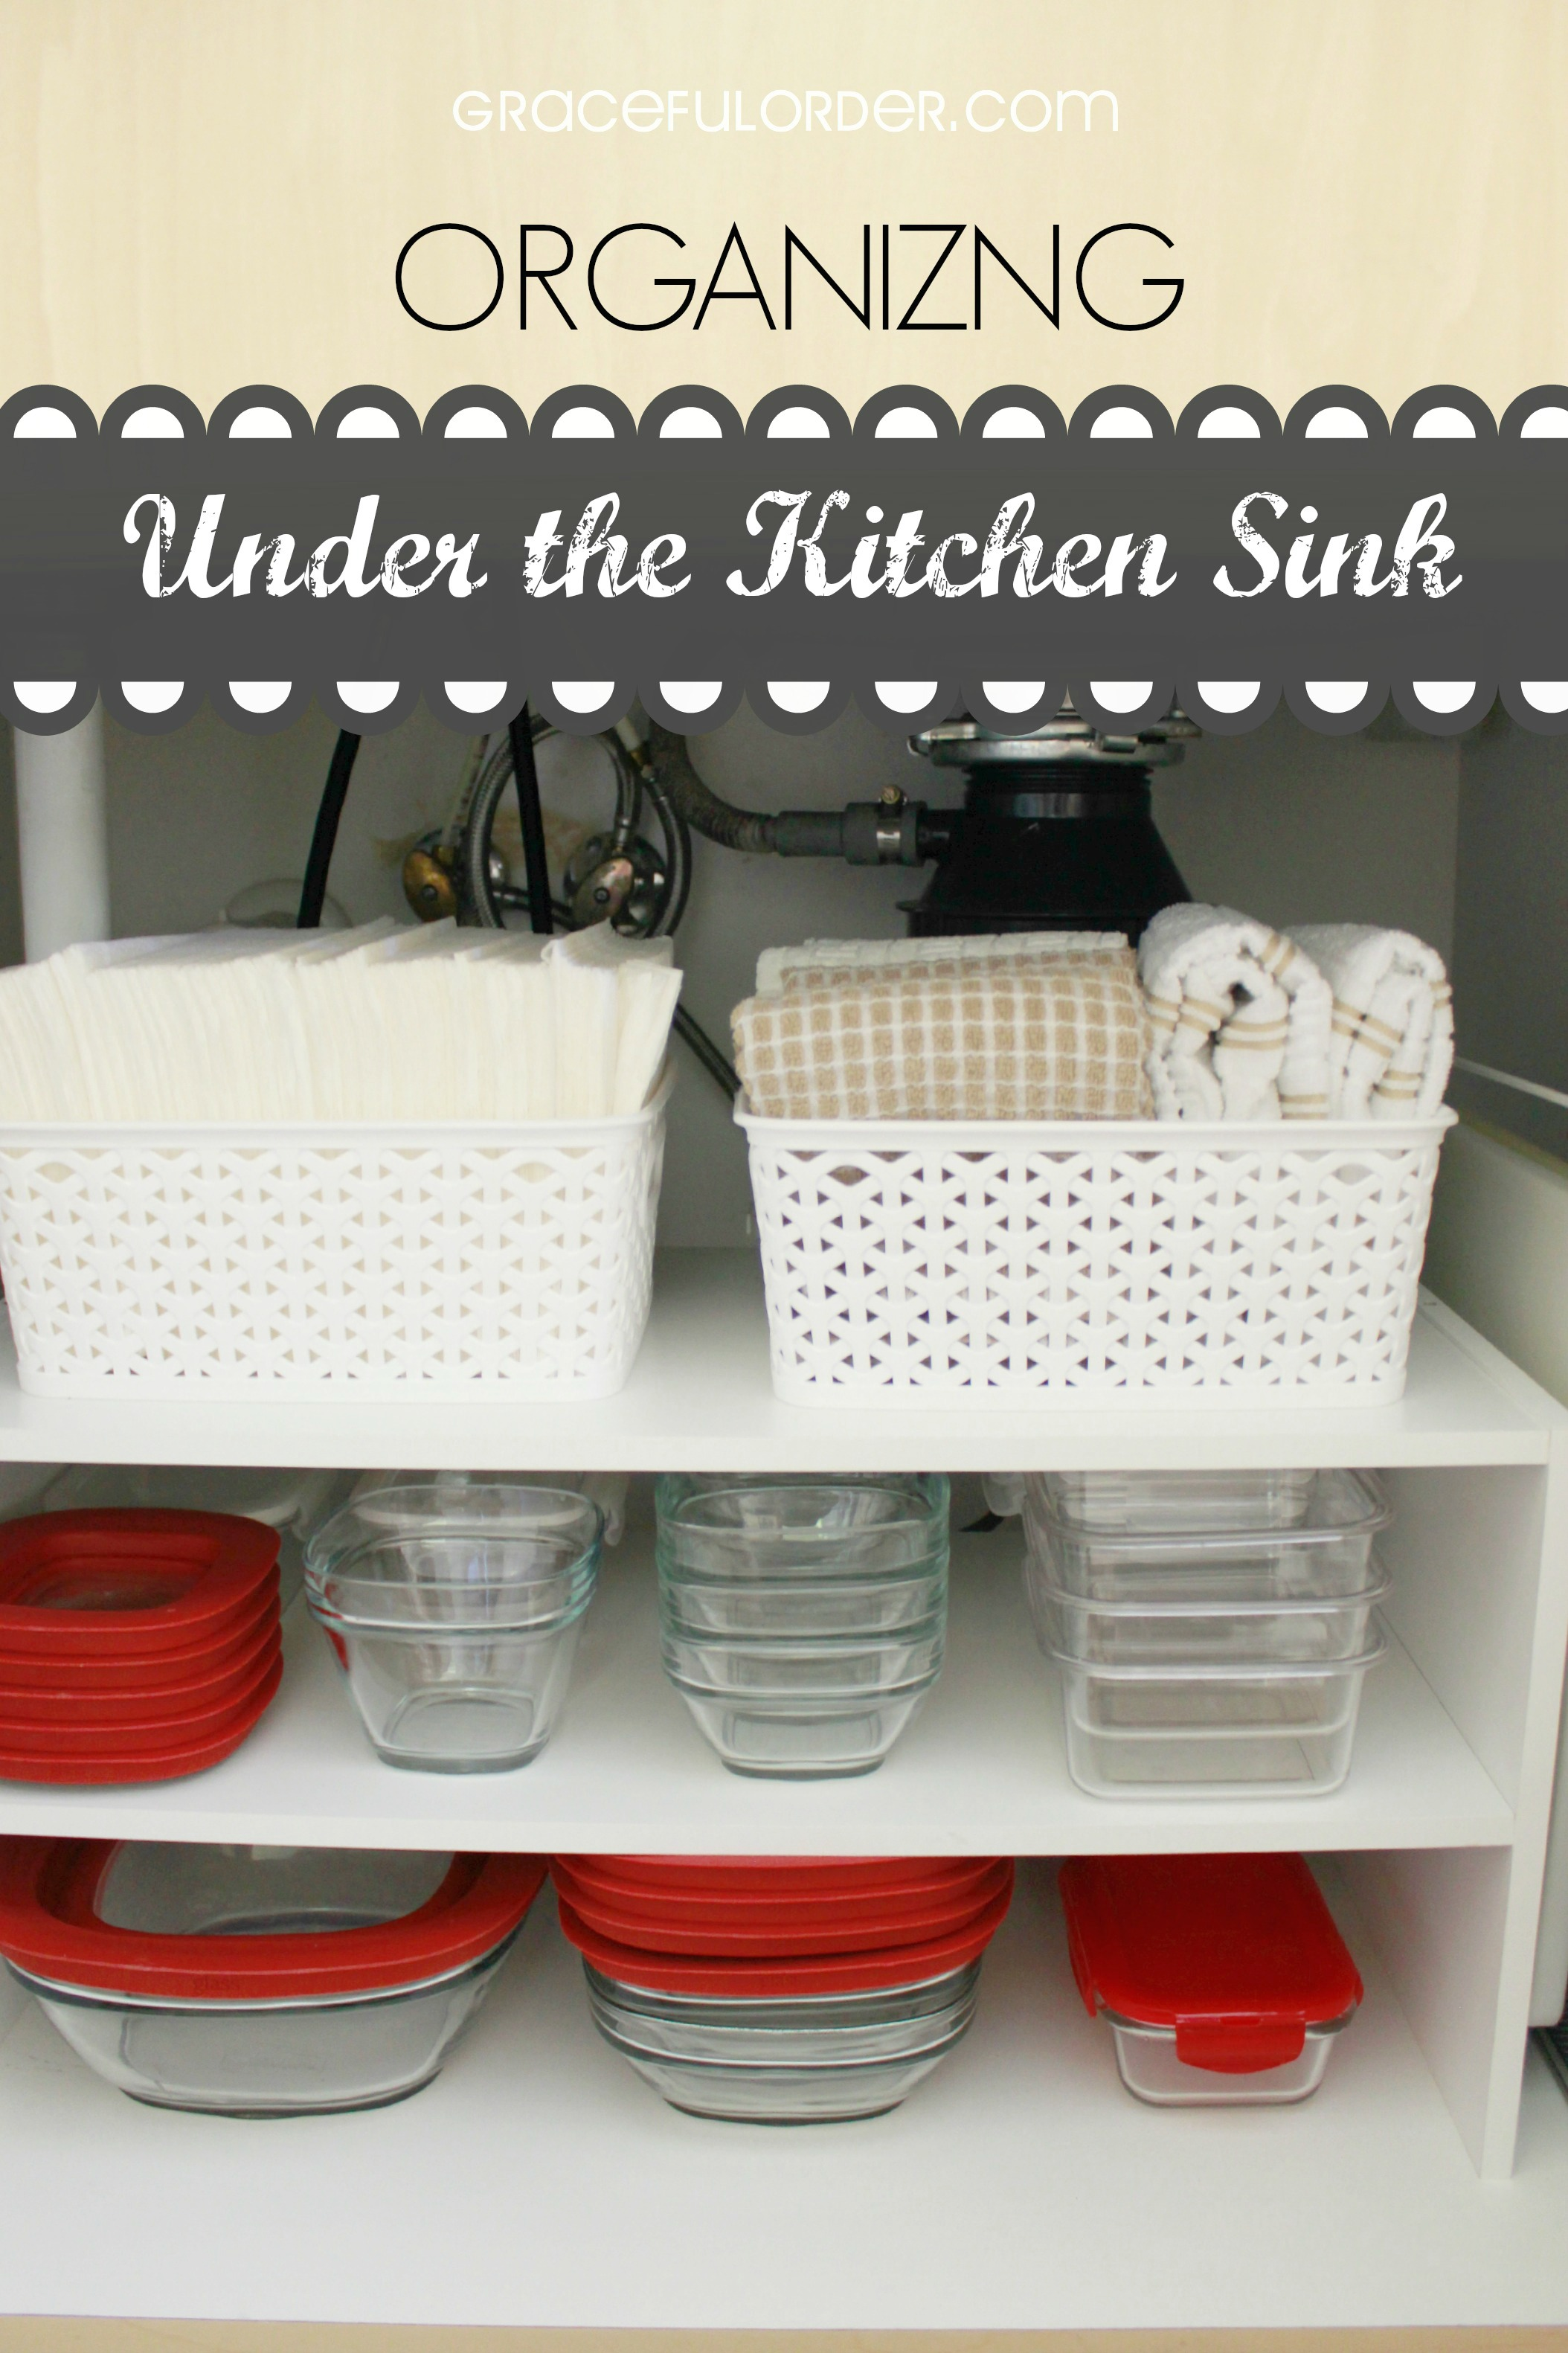 For Organizing Kitchen Organized Home Week 2 Kitchen Cabinets And Drawers Graceful Order